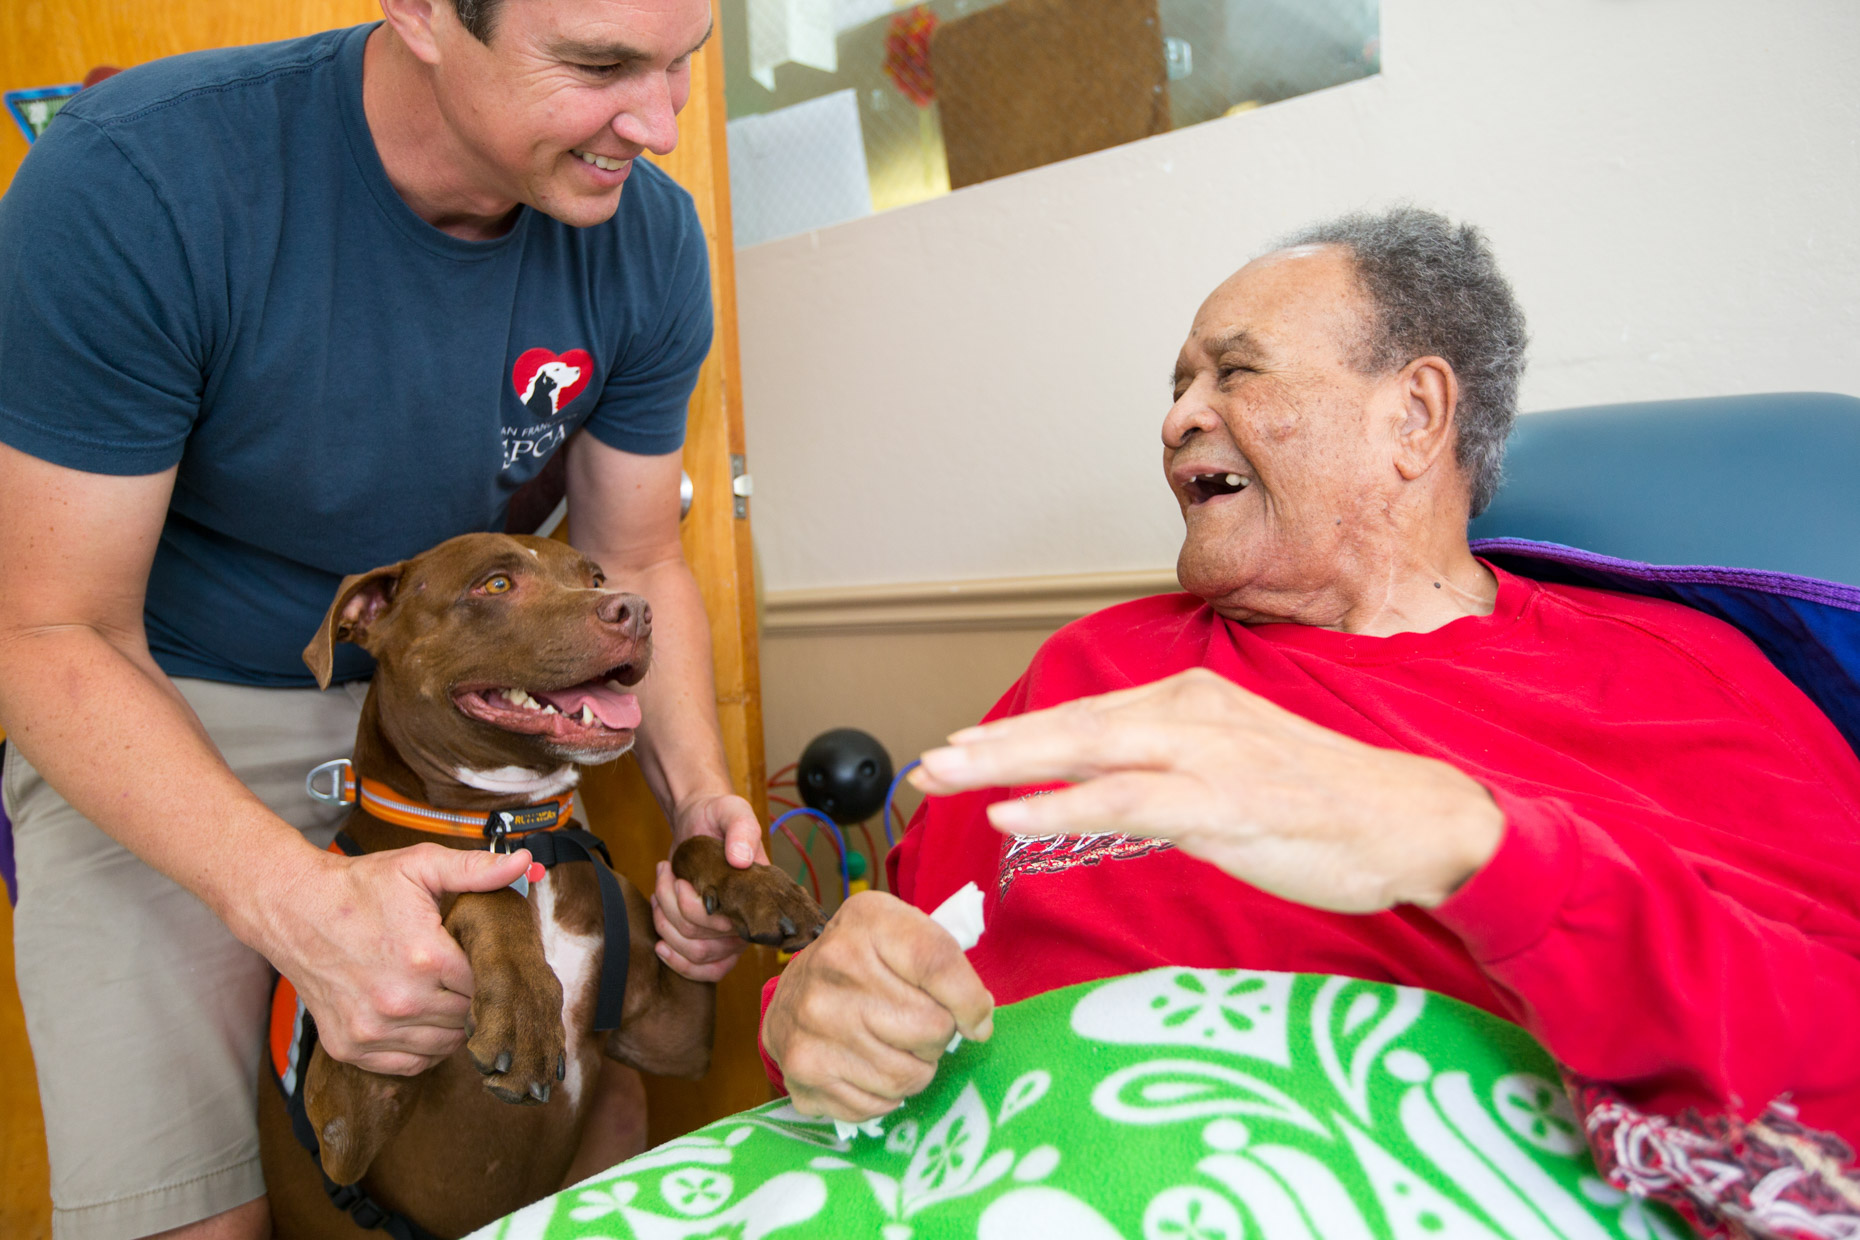 Commercial Animal Photography | Elderly Man with Therapy Dog by Mark Rogers